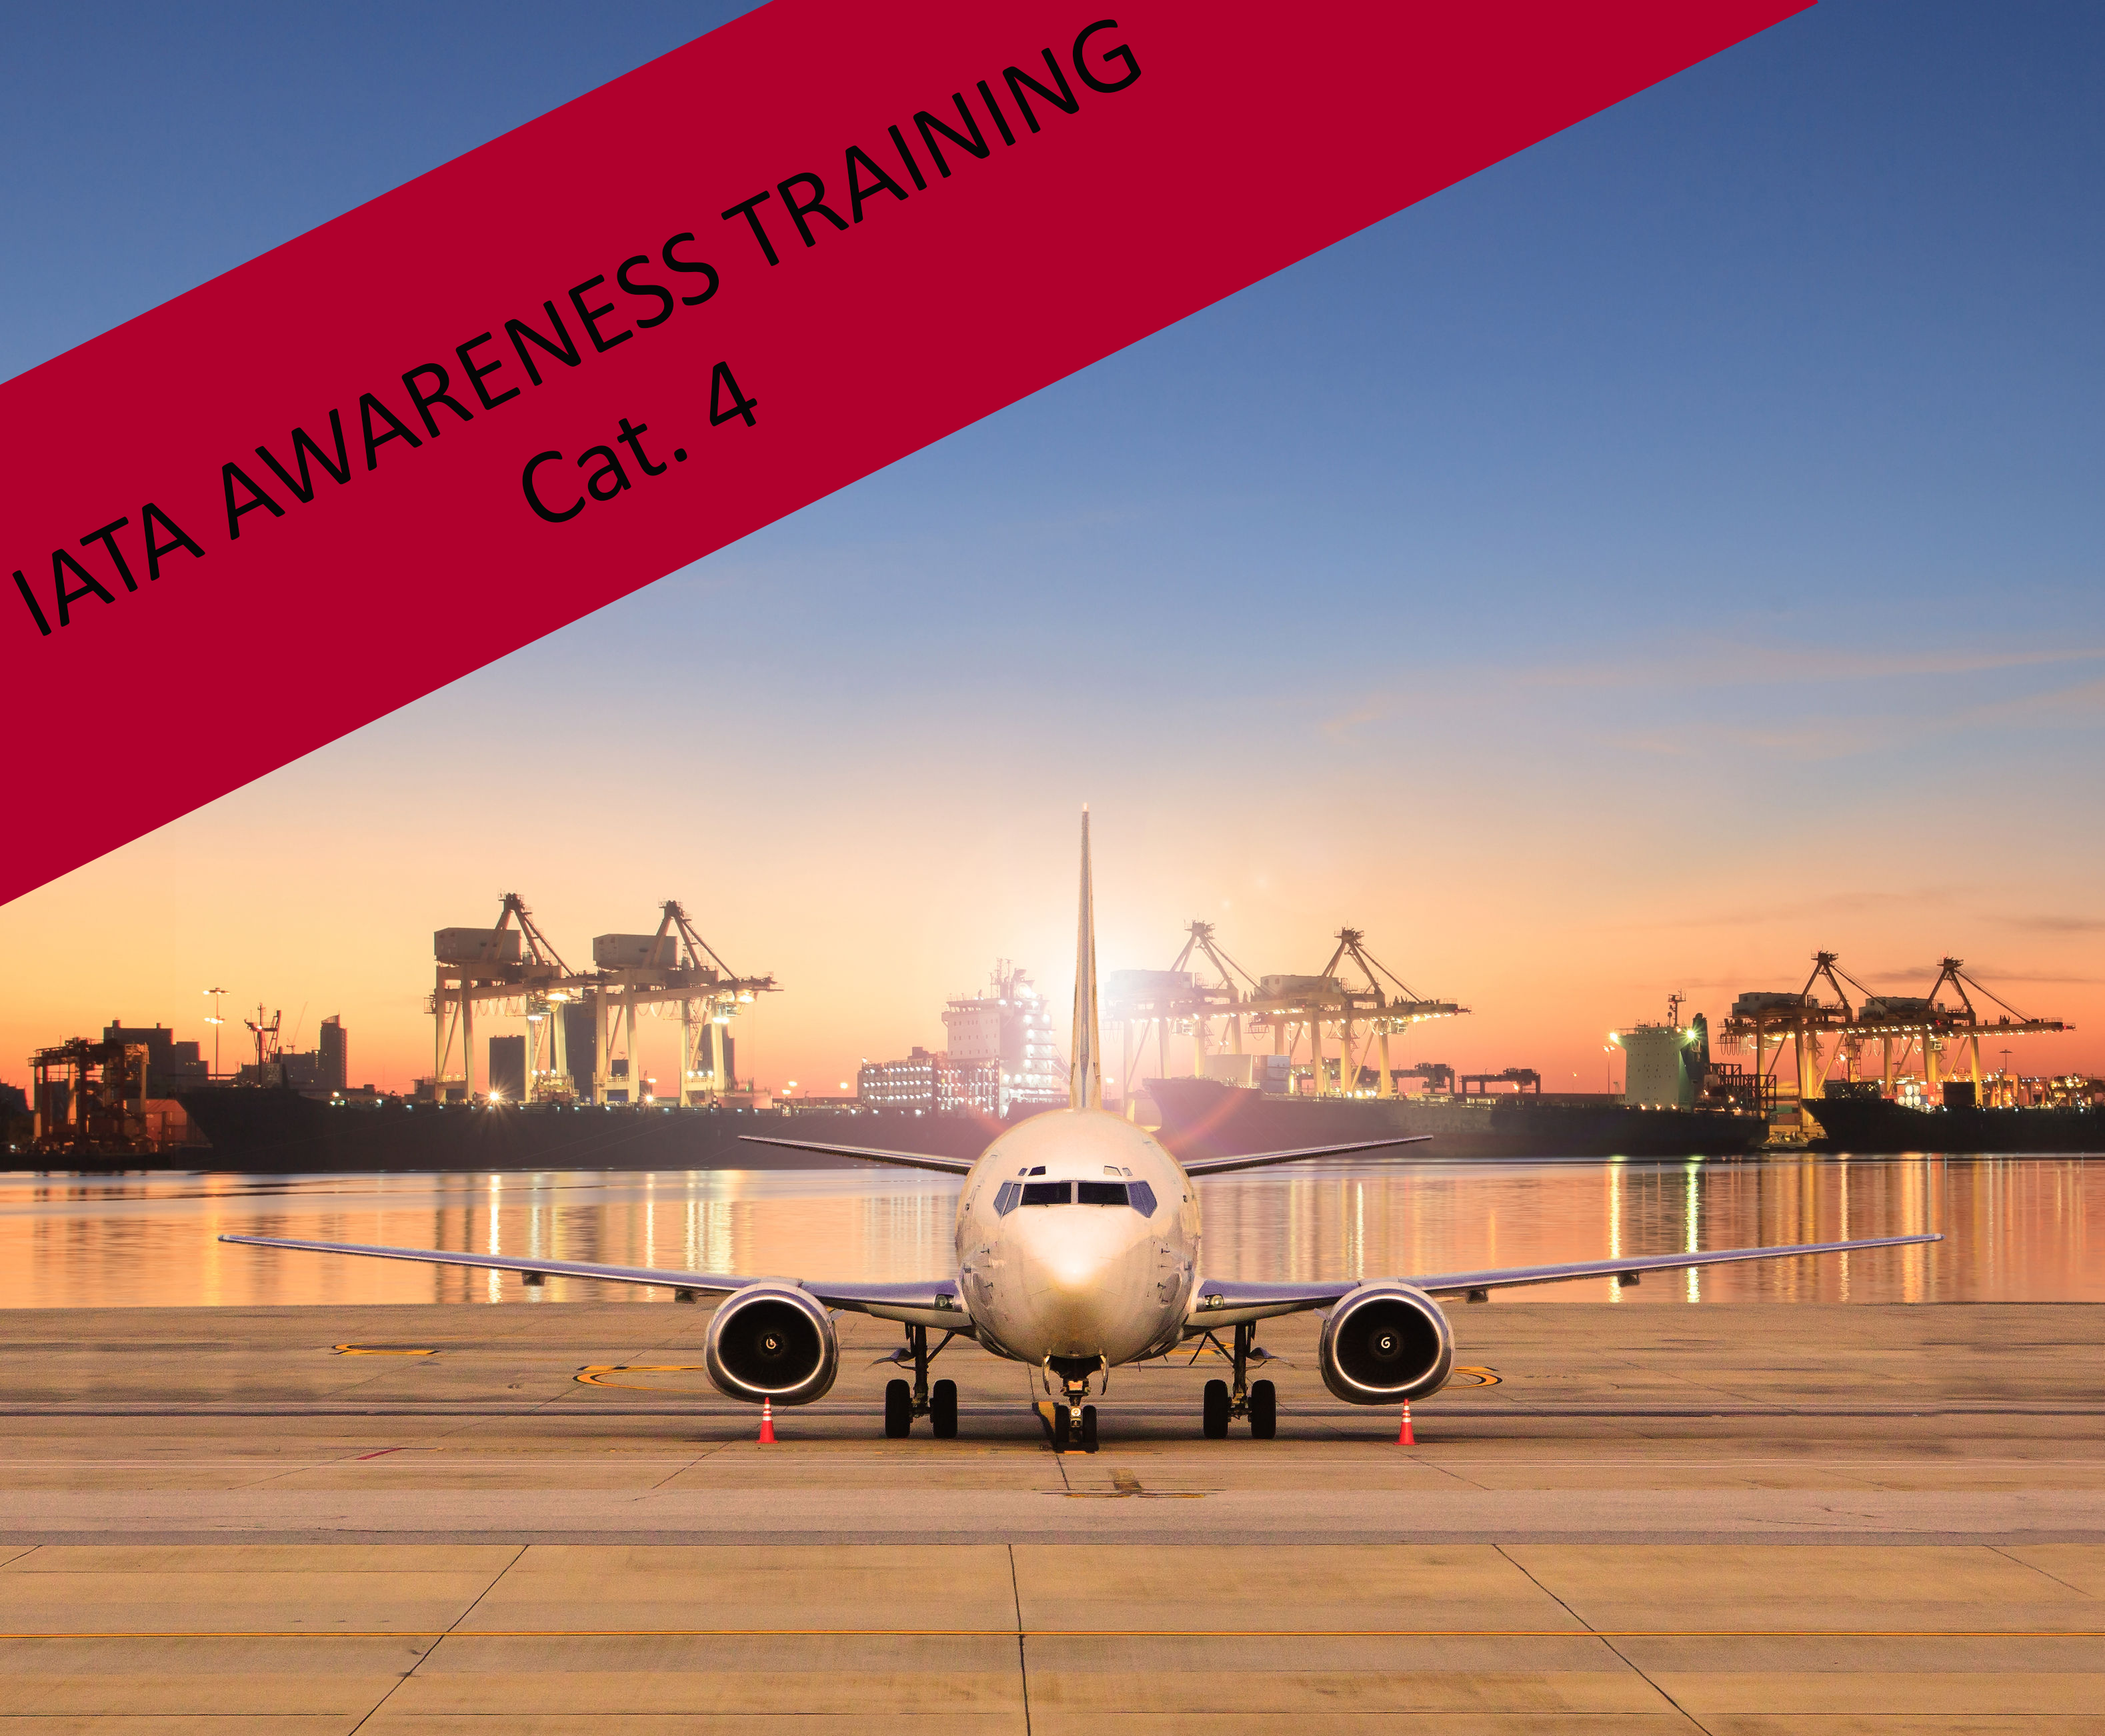 IATA Awareness Training, Cat. 4